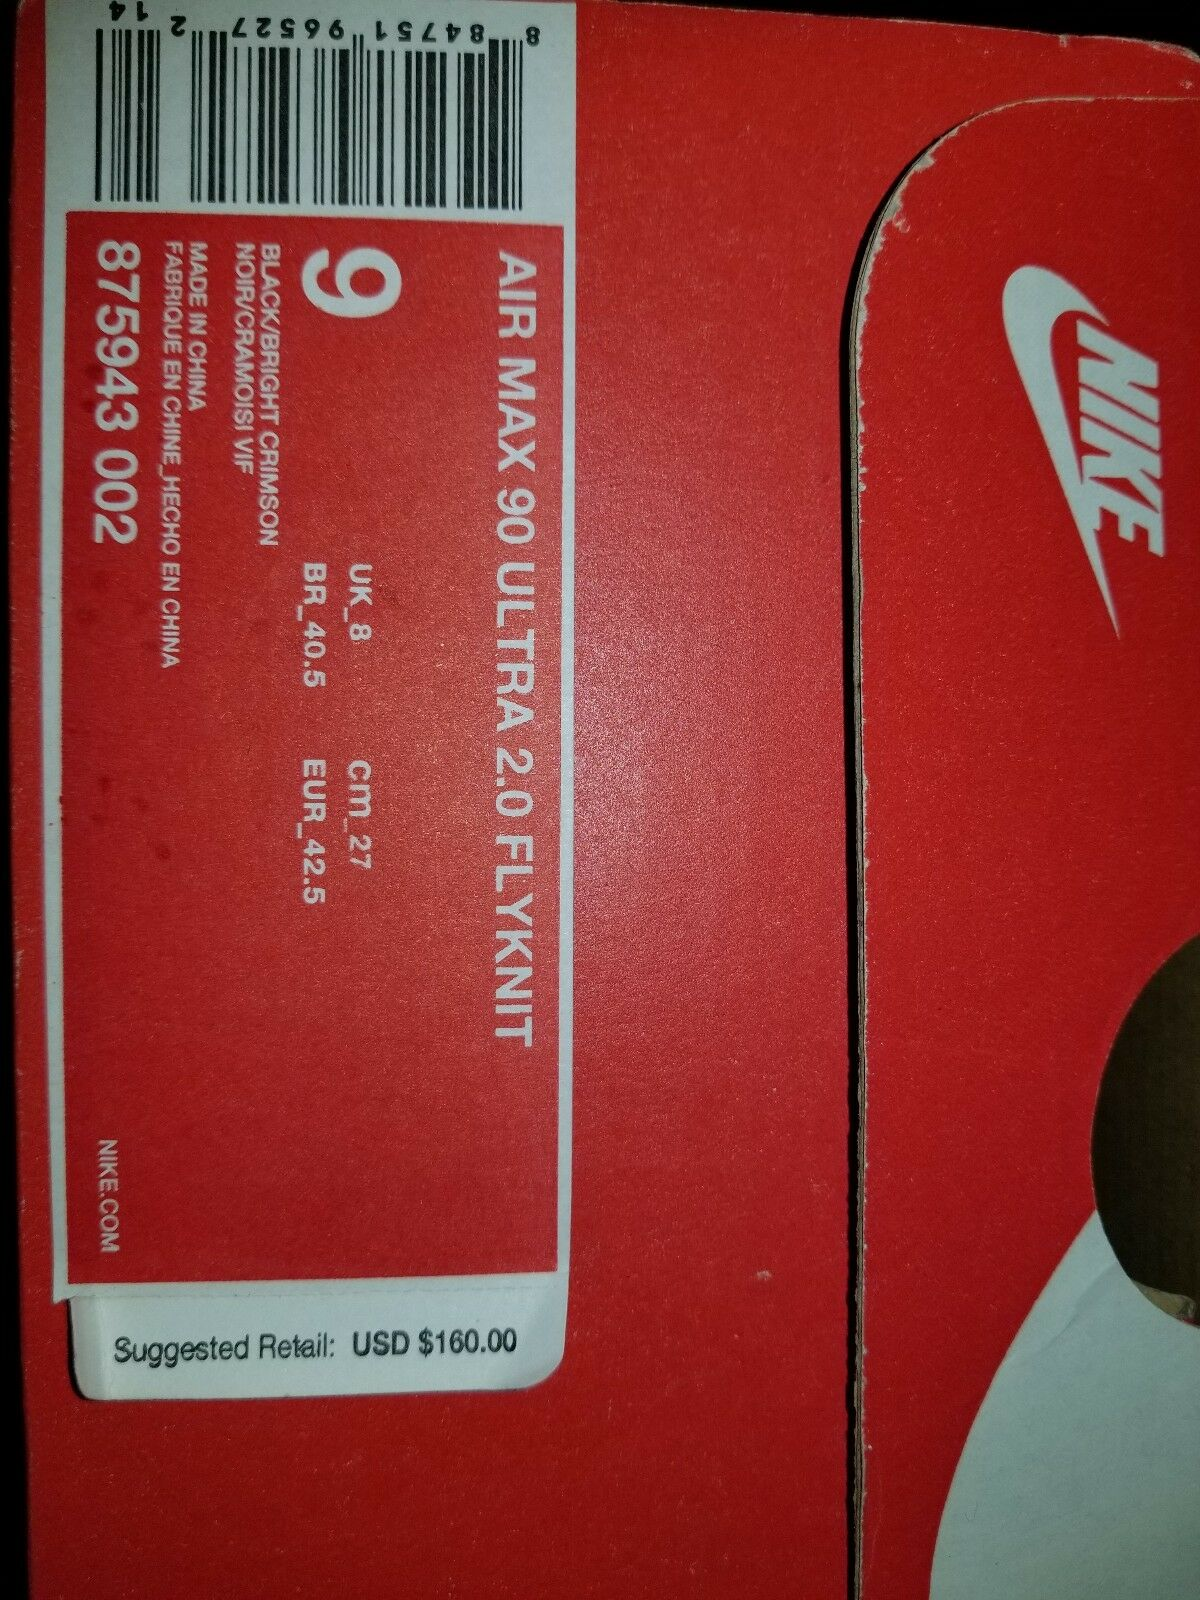 Details about NEW Nike Air Max 90 Ultra 2.0 Flyknit Men's Size 11.5 Oreo Black Grey Mens Run